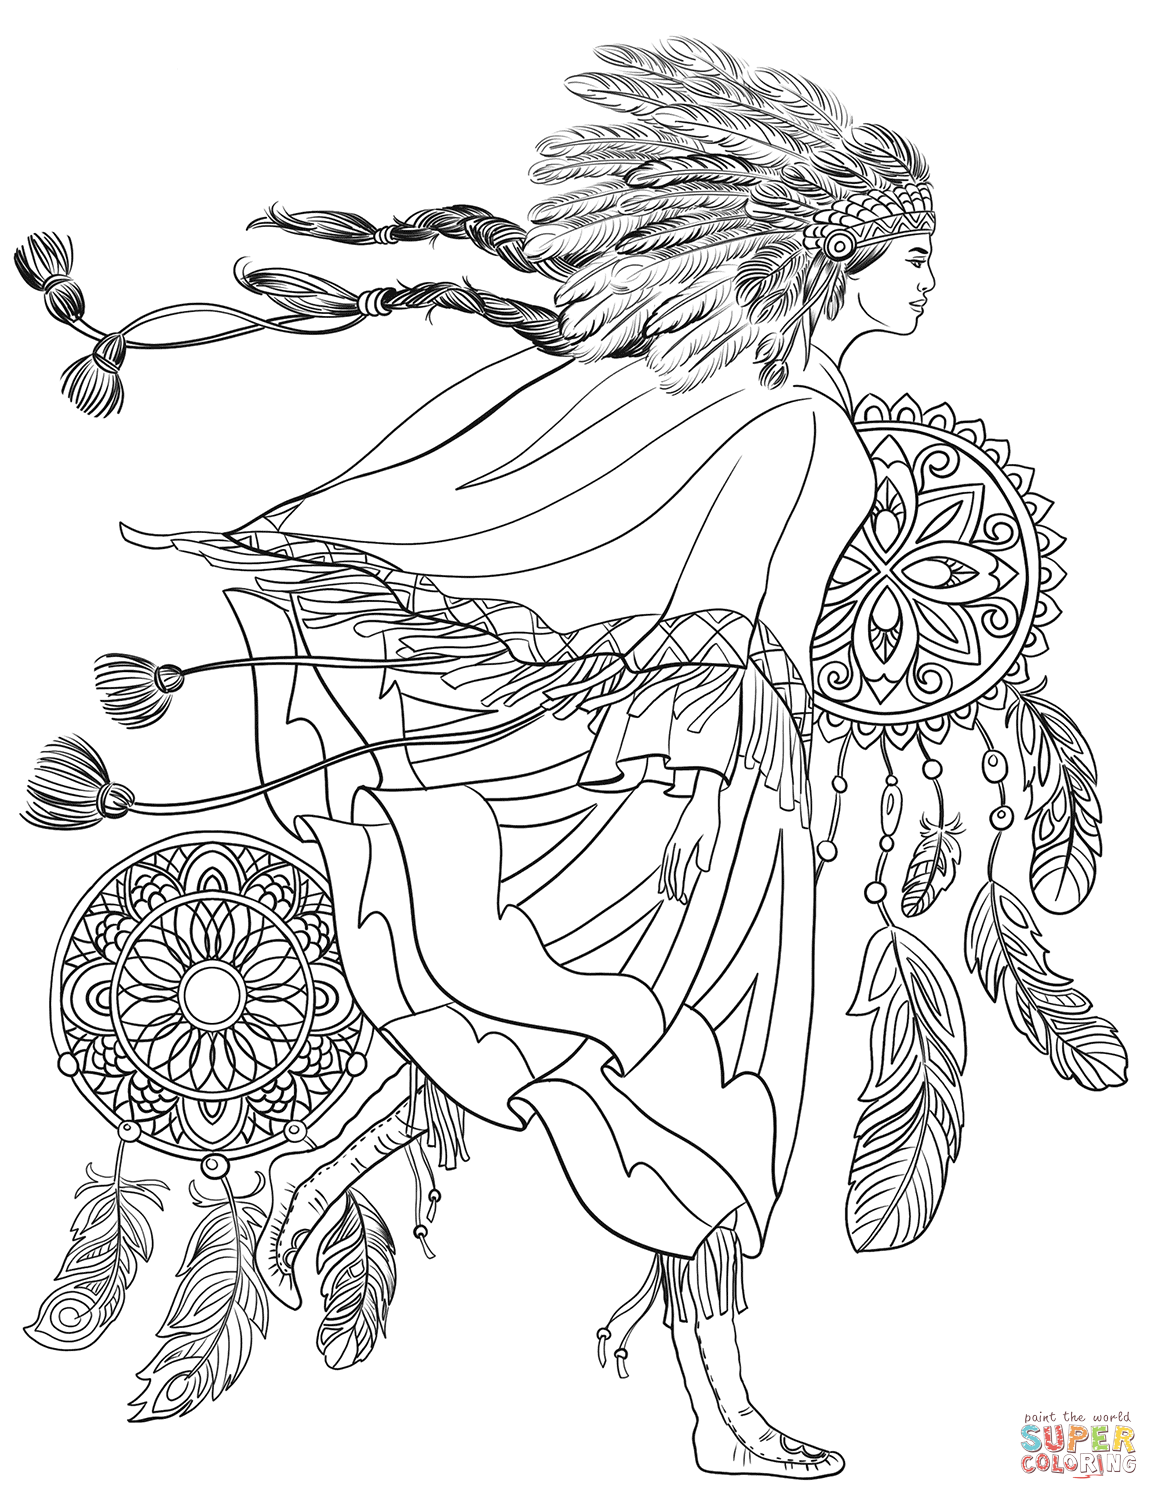 #coloring #pages #pomo #tribe #2020 Check more at https